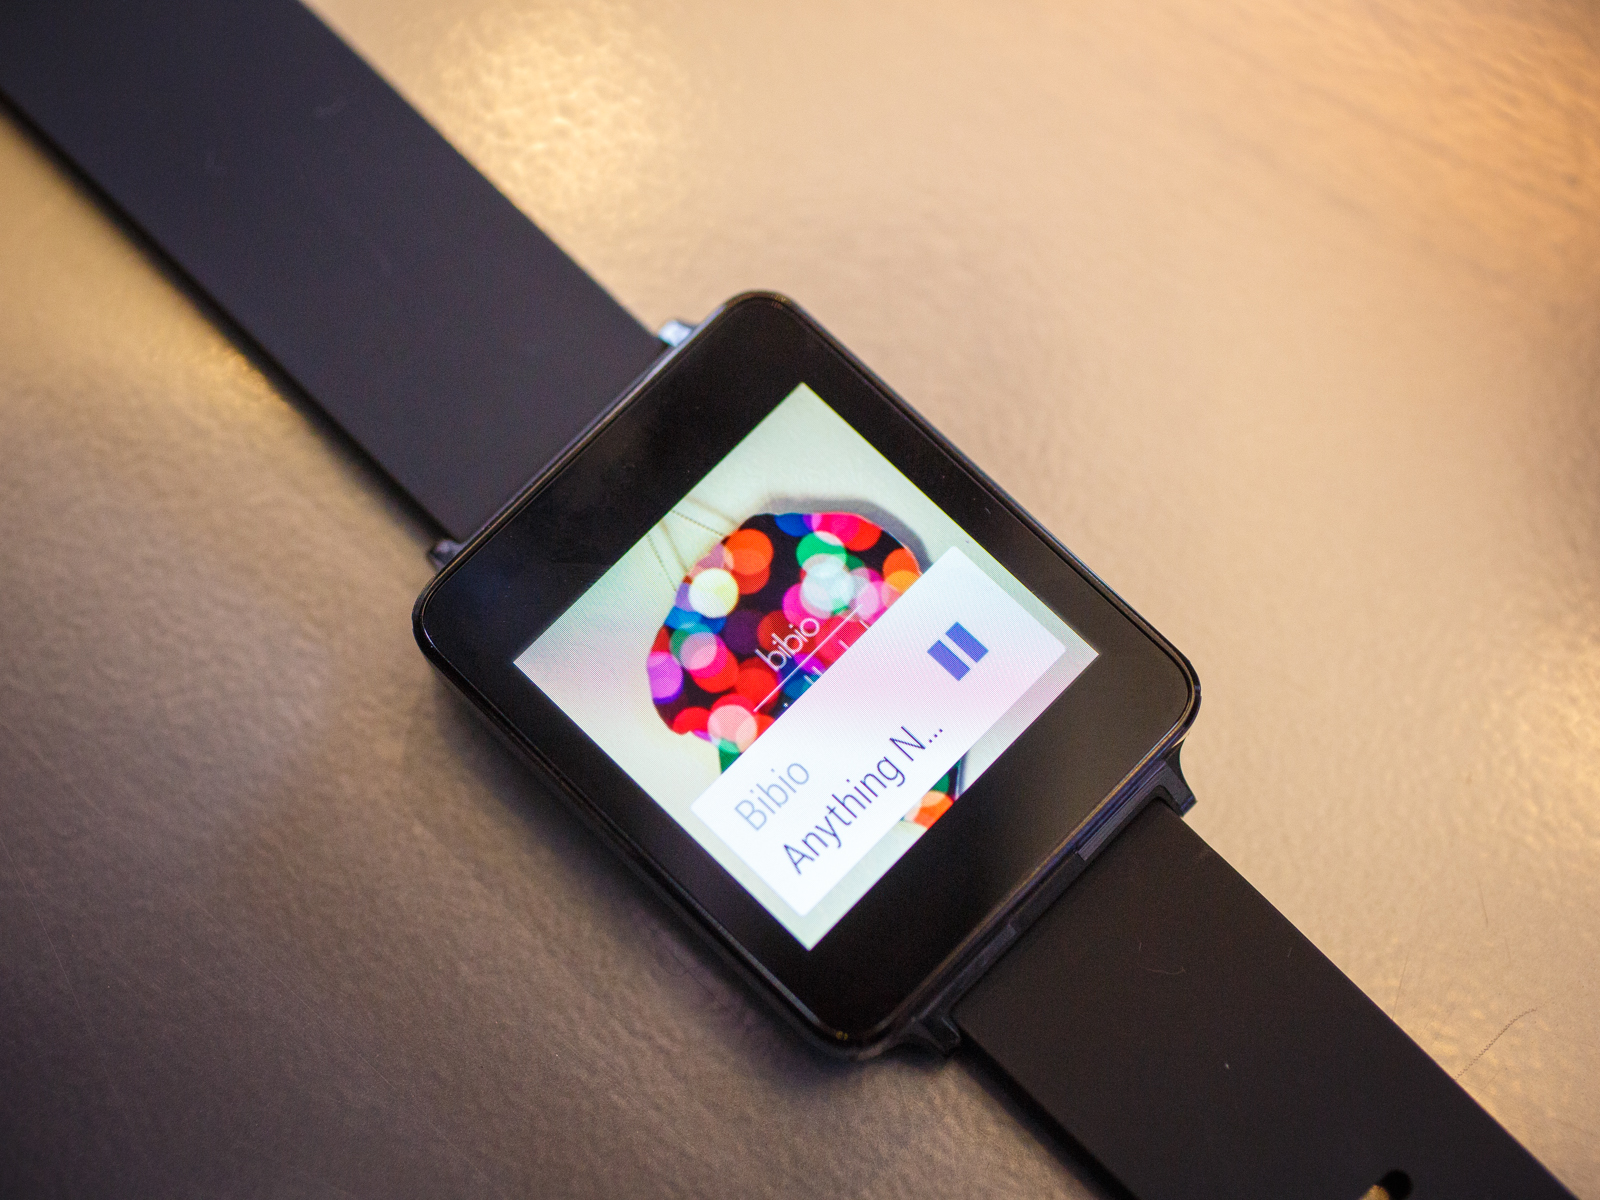 lg-g-watch-android-wear-14.jpg